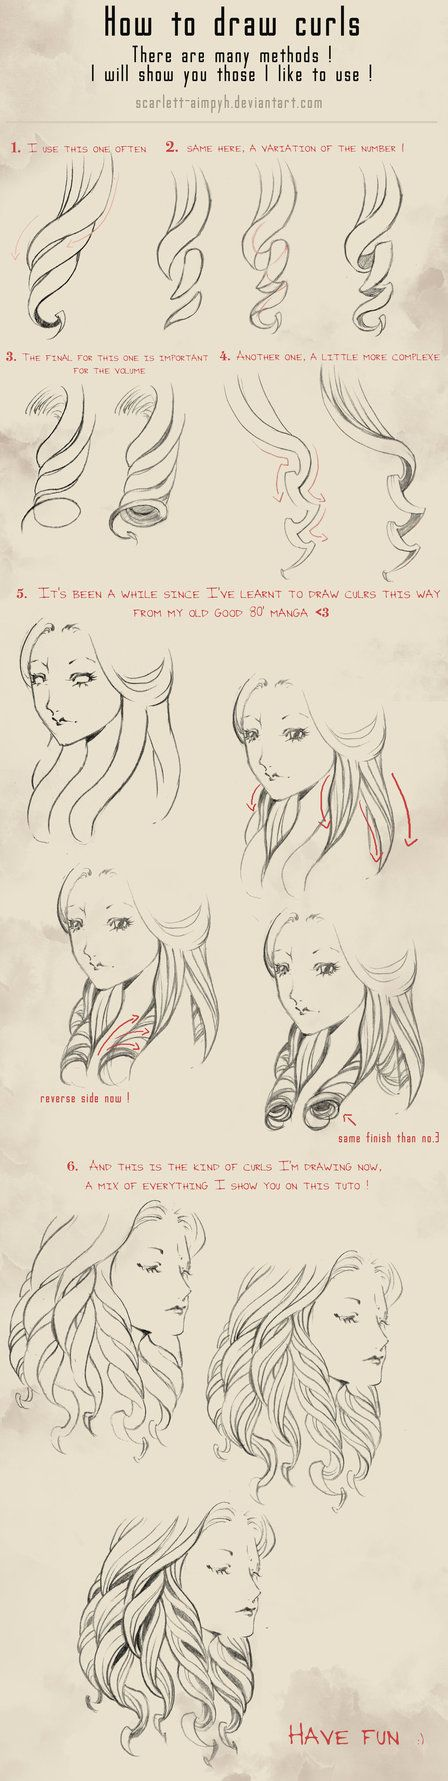 114 - How to draw curls by Scarlett-Aimpyh on deviantART ★ || CHARACTER DESIGN REFERENCES™ (https://www.facebook.com/CharacterDesignReferences & https://www.pinterest.com/characterdesigh) • Love Character Design? Join the #CDChallenge (link→ https://www.facebook.com/groups/CharacterDesignChallenge) Share your unique vision of a theme, promote your art in a community of over 50.000 artists! || ★